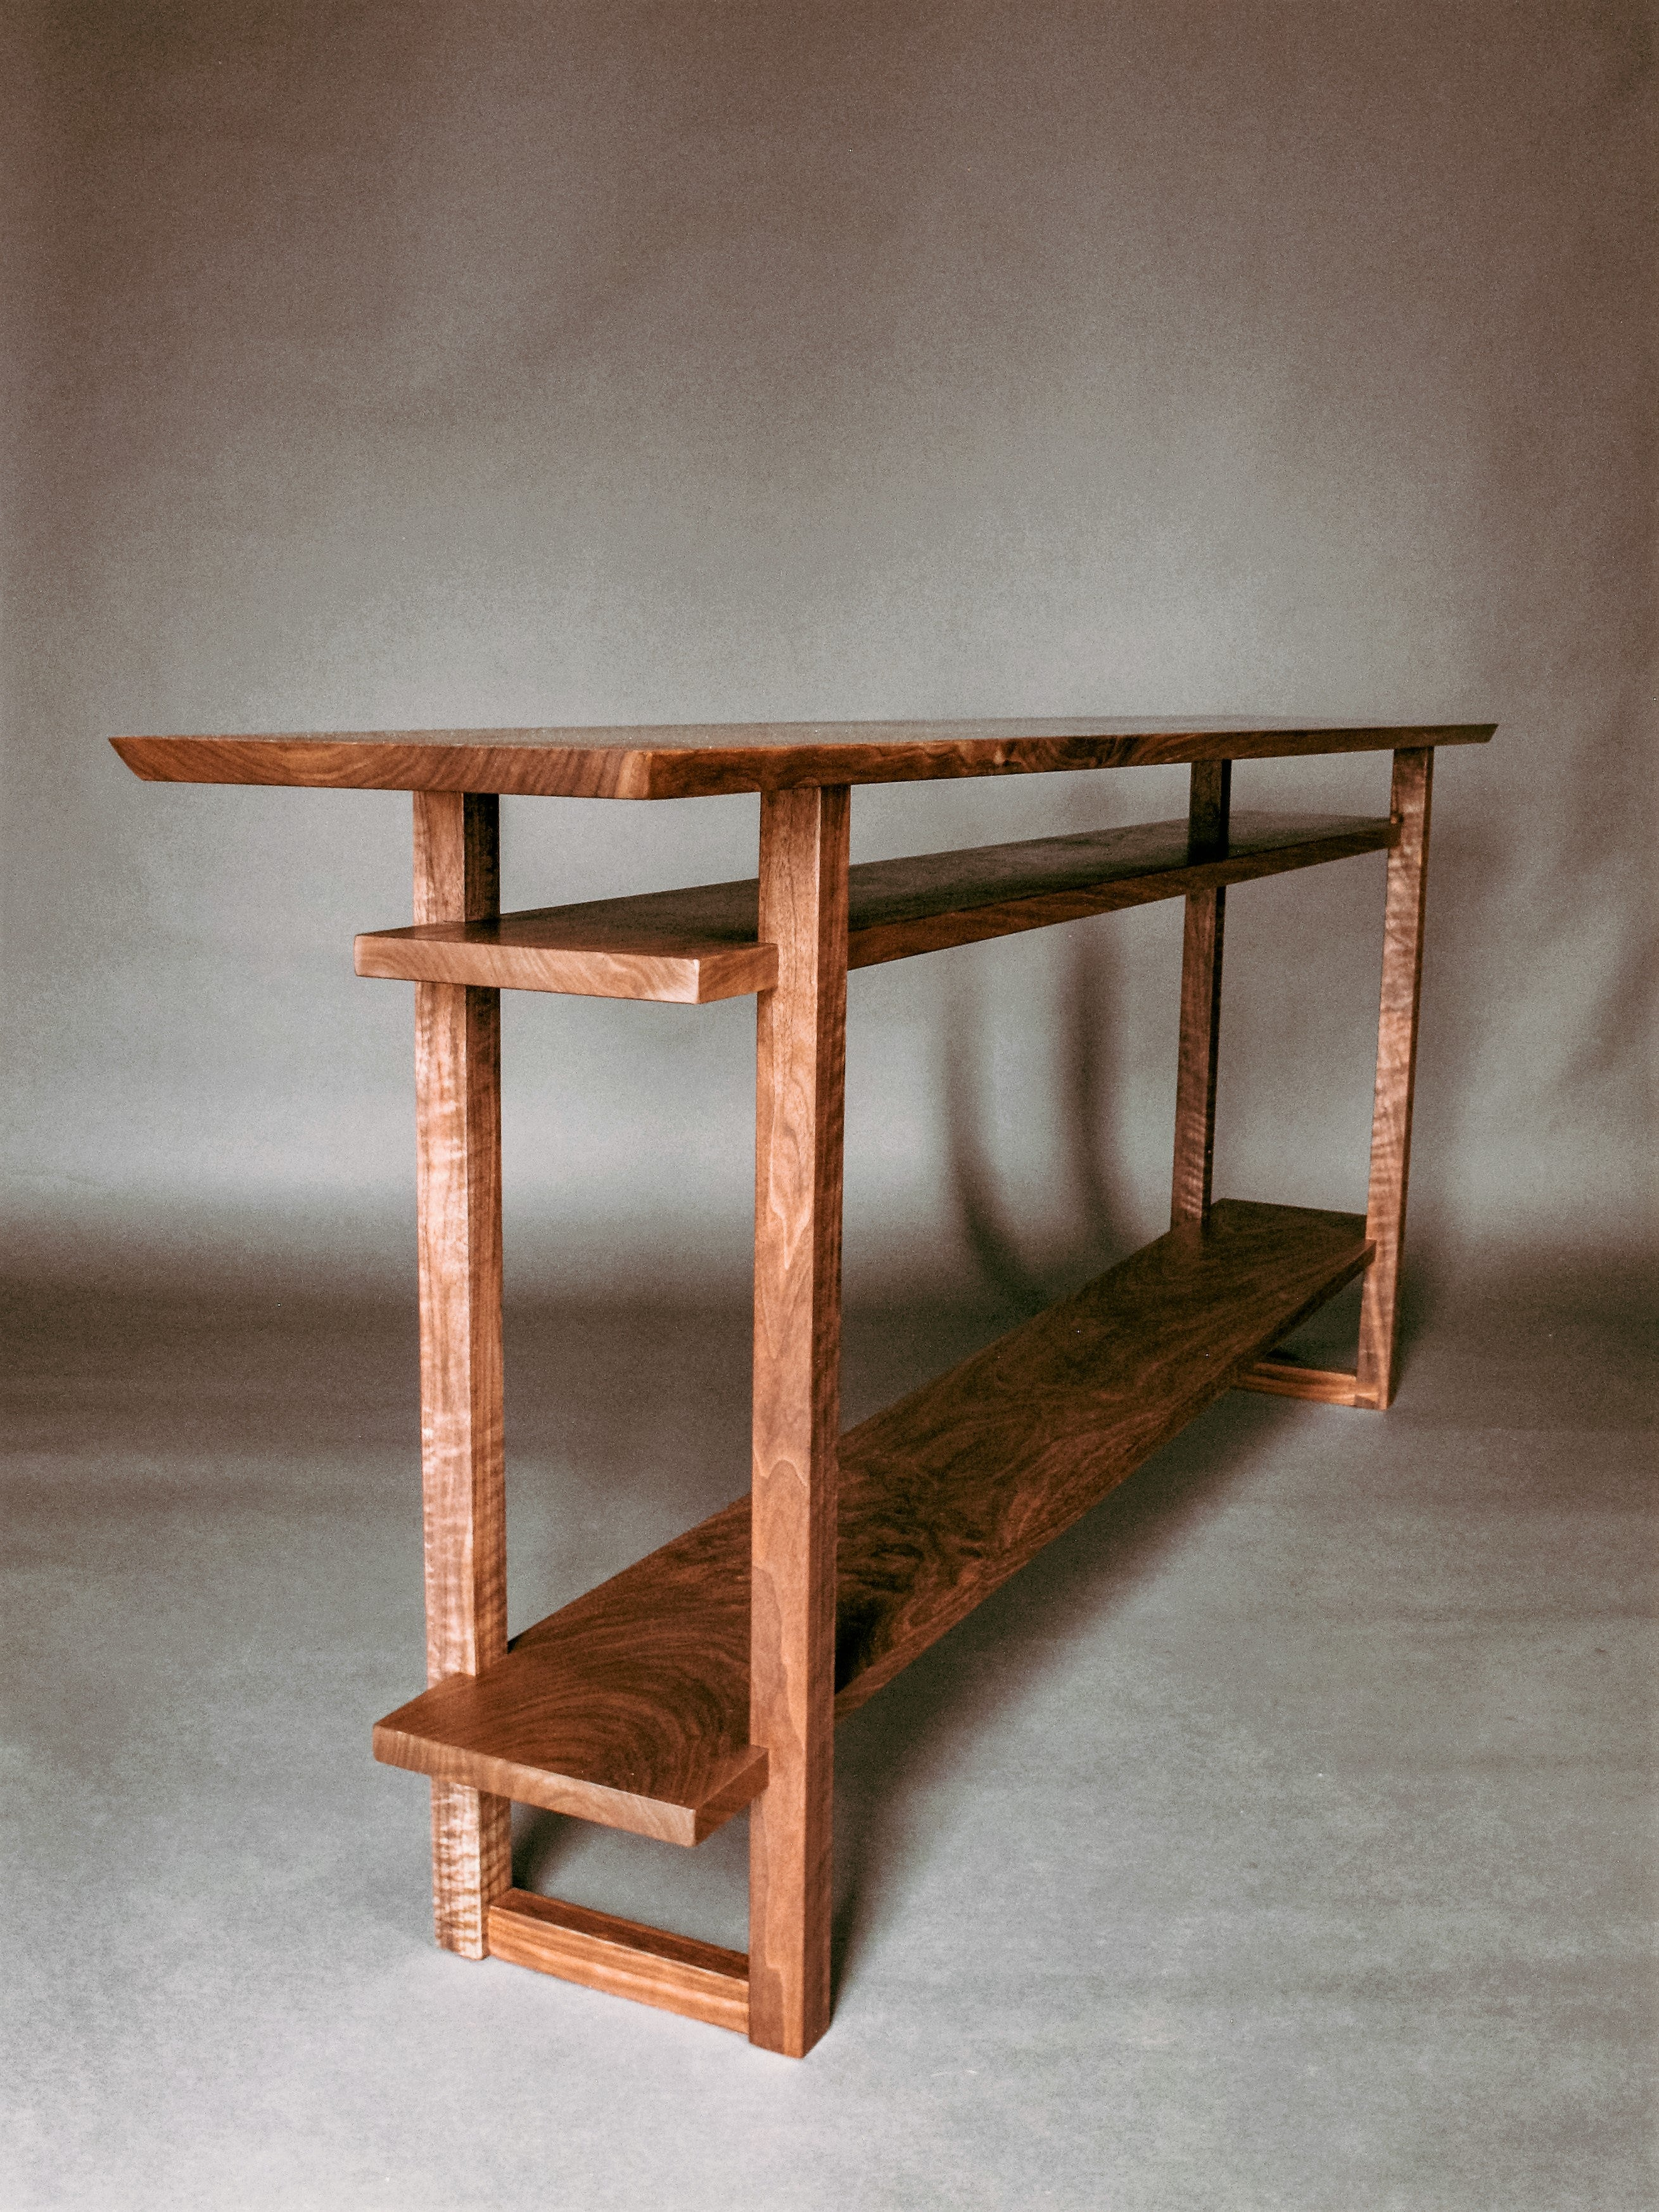 a long narrow console table with two shelves handmade from solid walnut wood